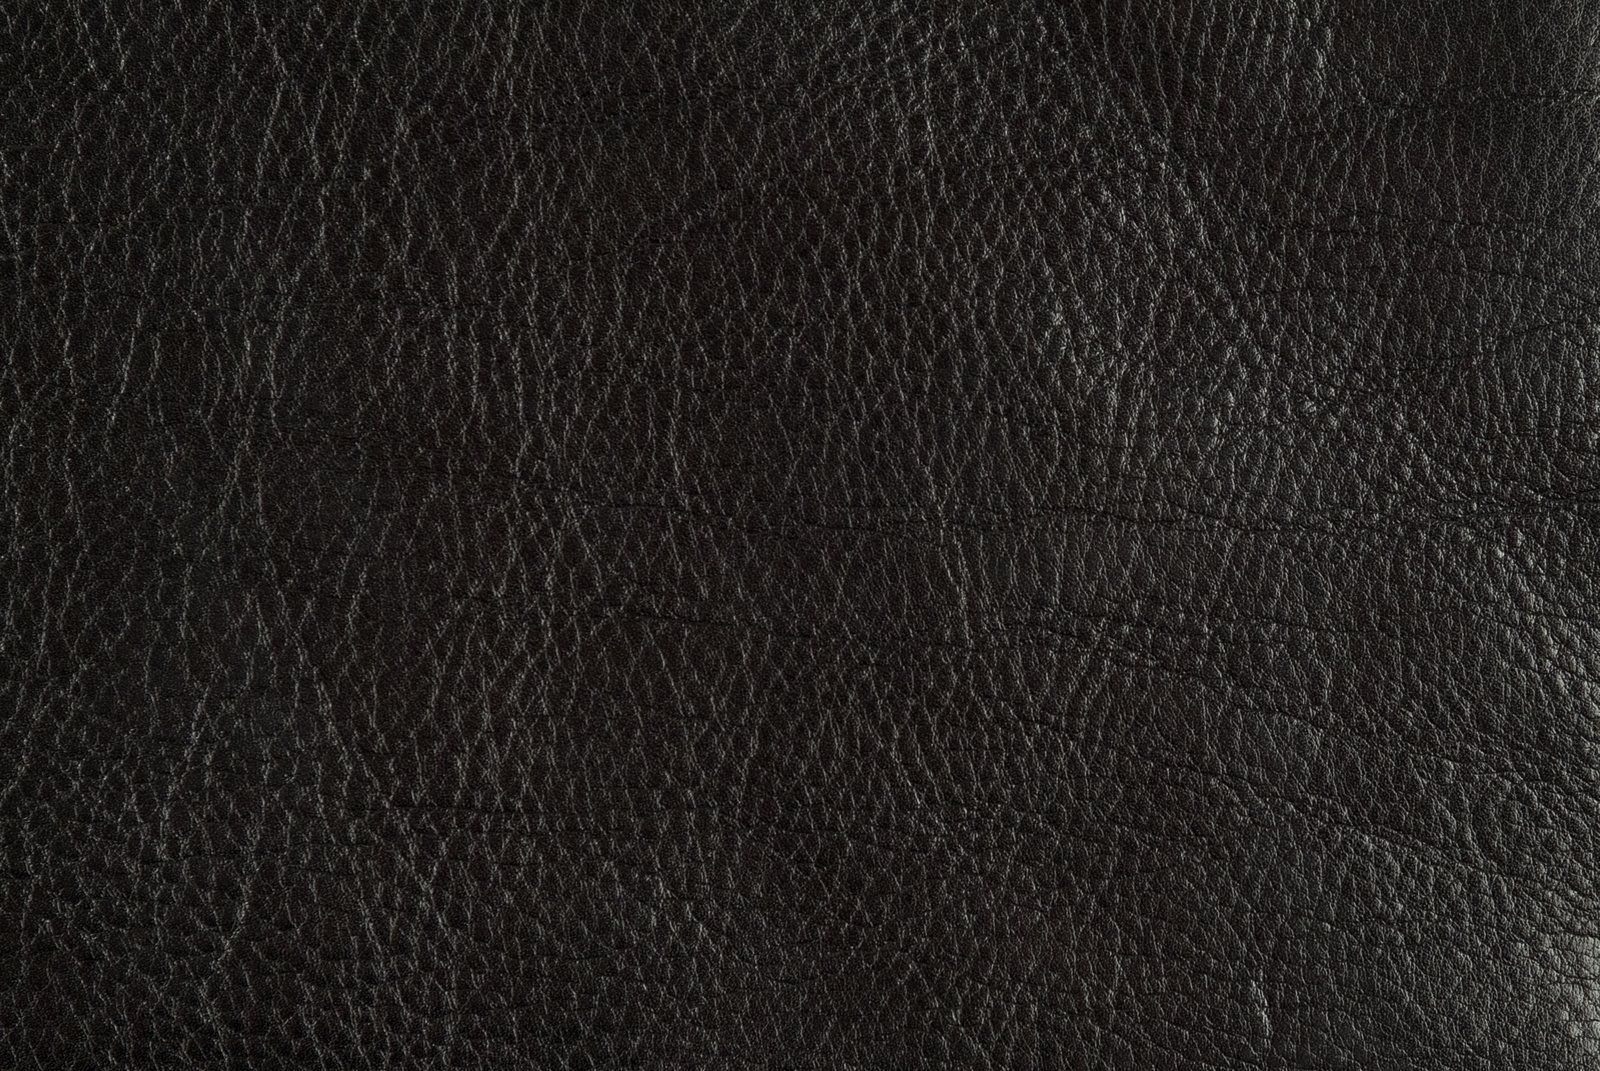 leather background search design